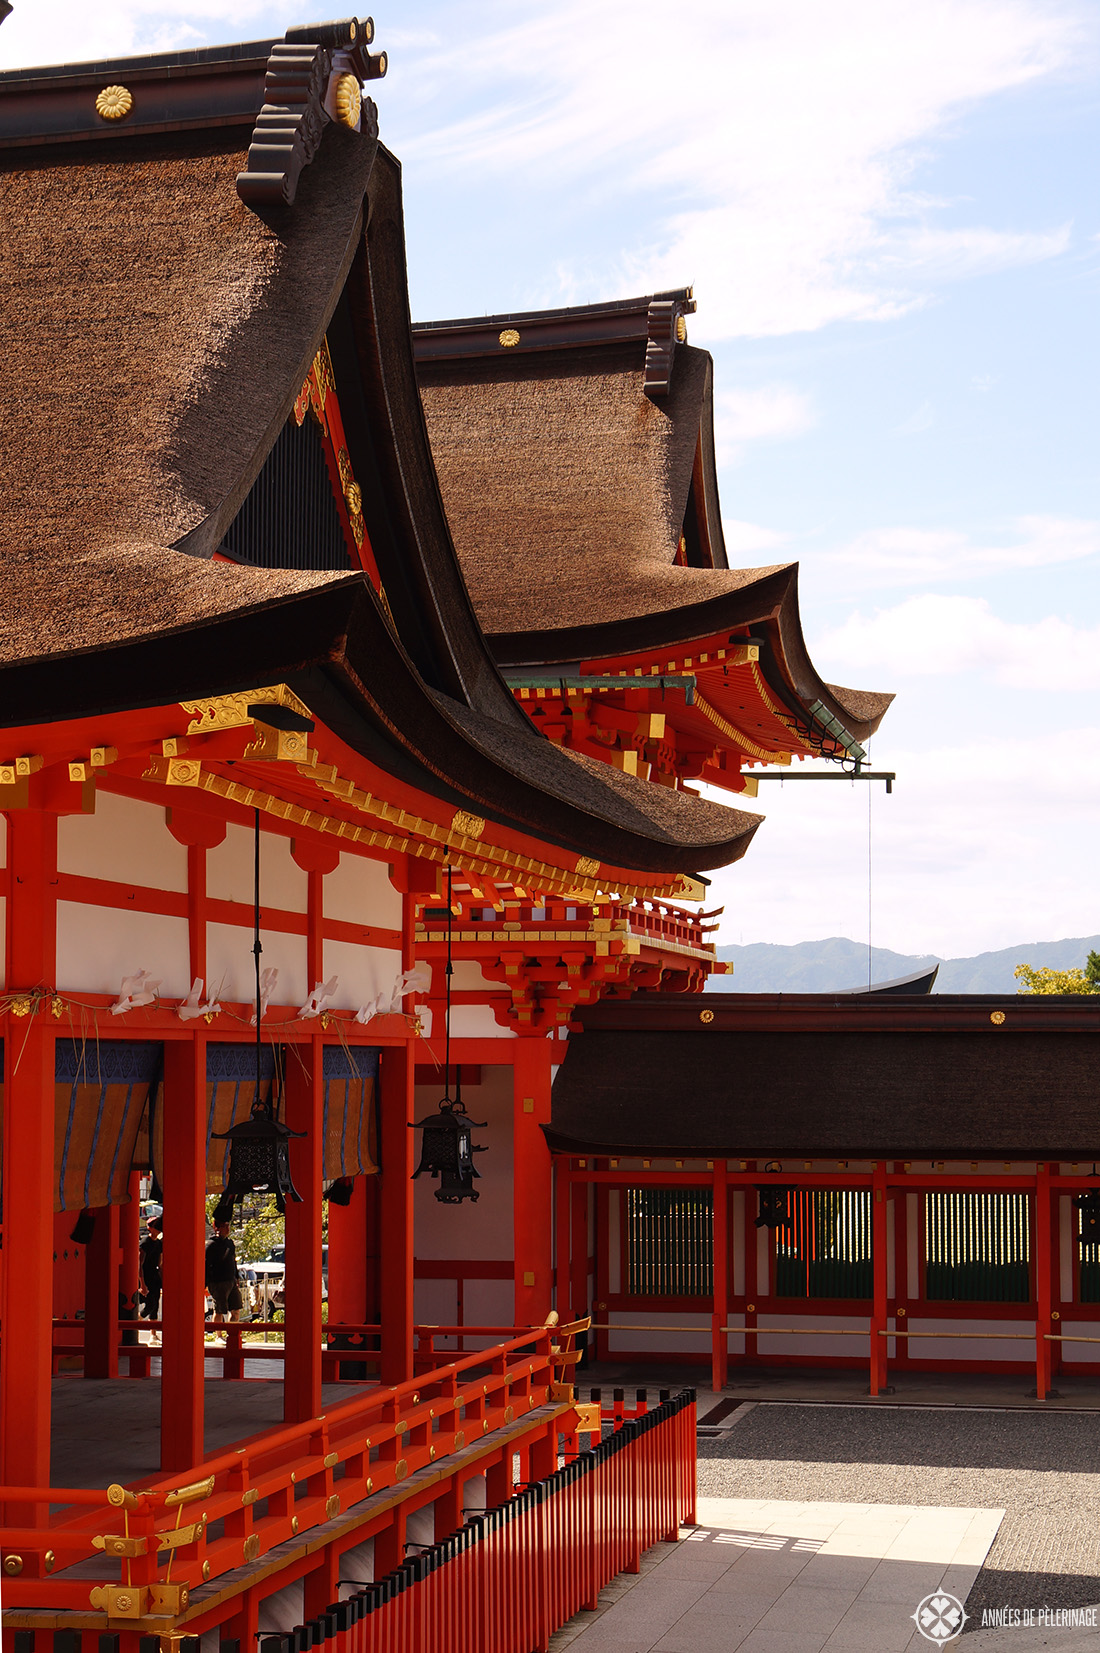 The main hall of the Fushimi Inari Taisha shrine in Kyoto